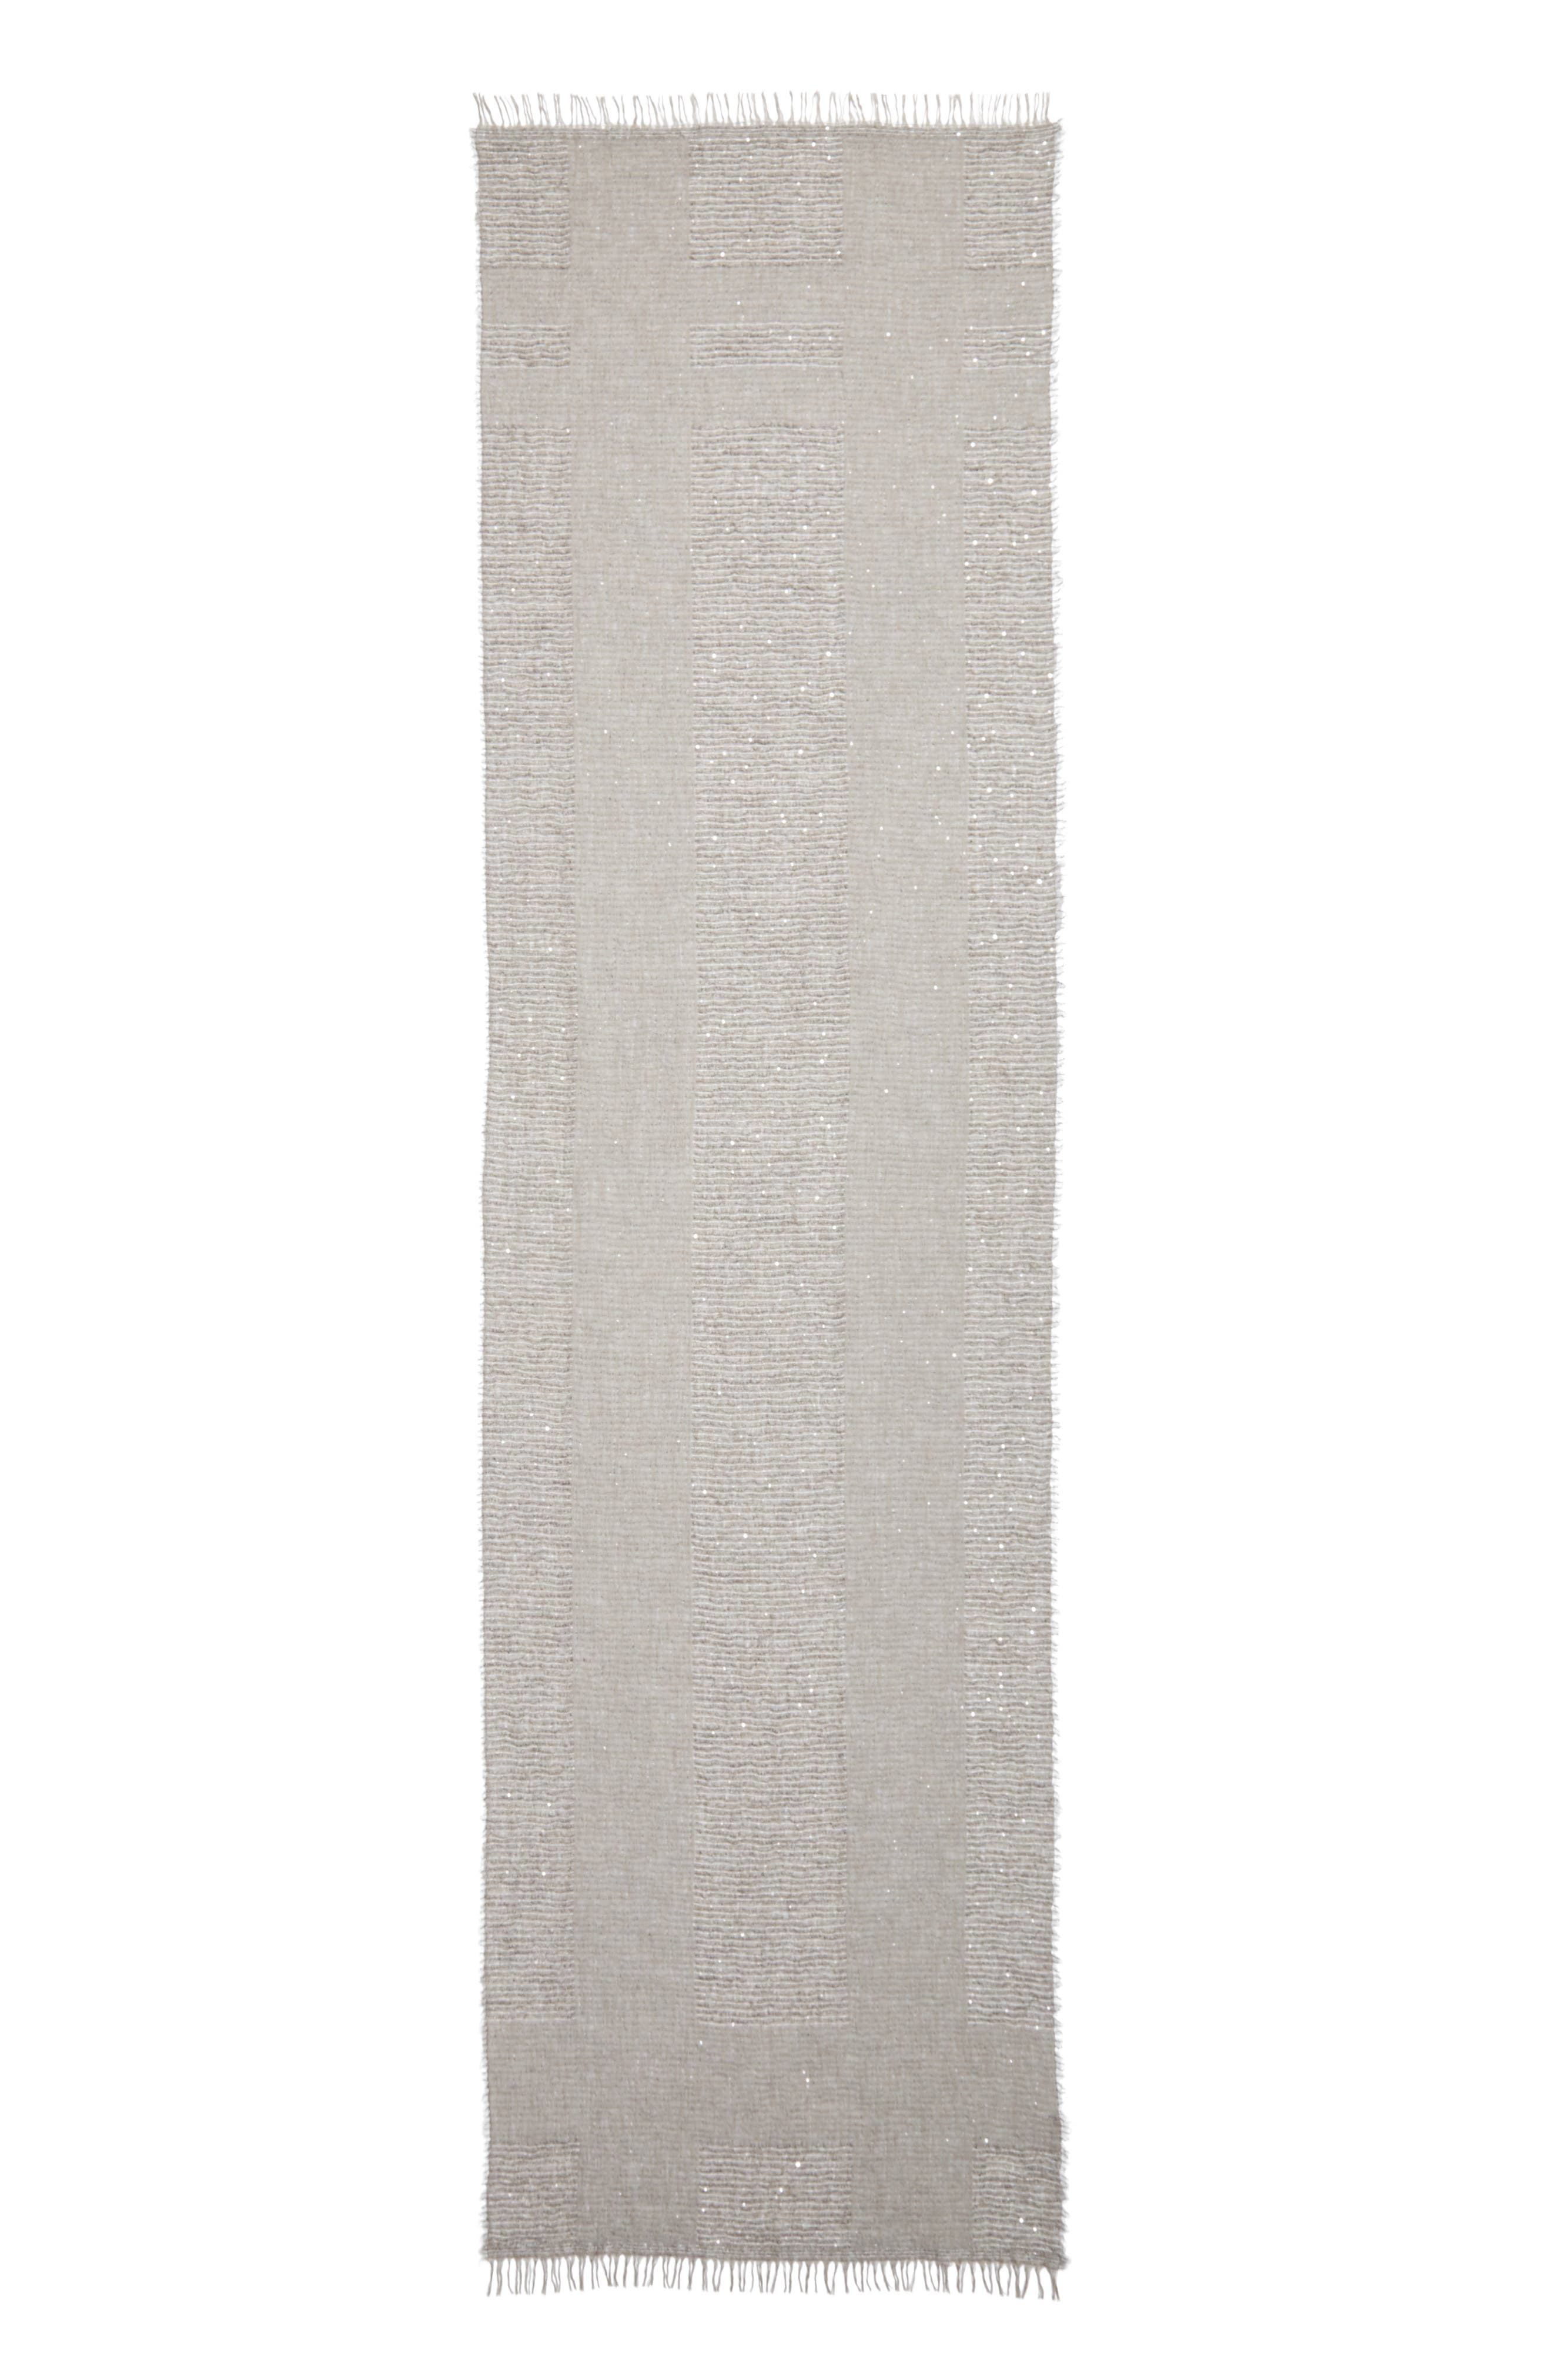 Fringed Modal Blend Scarf,                         Main,                         color, Grey / Taupe